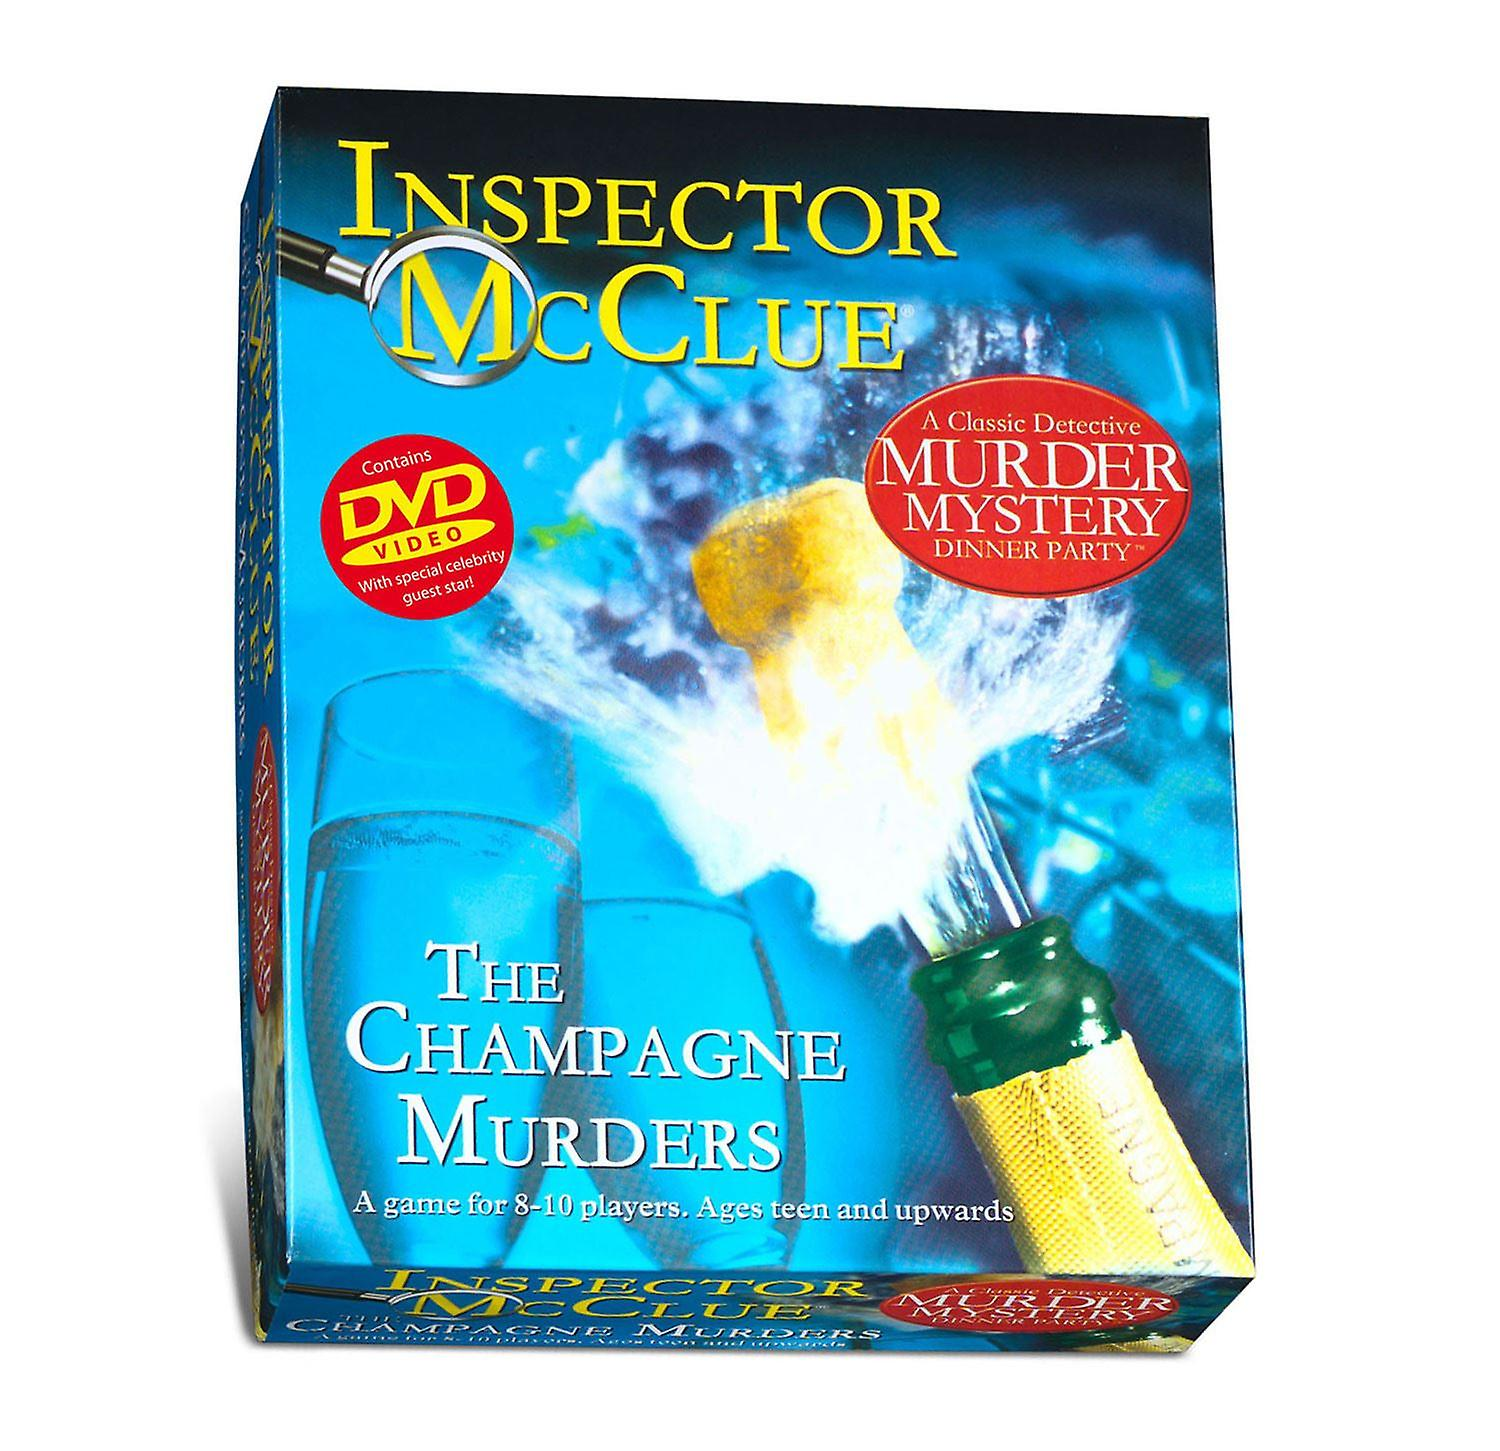 Inspector McClue Murder Mystery - The Champagne Murders